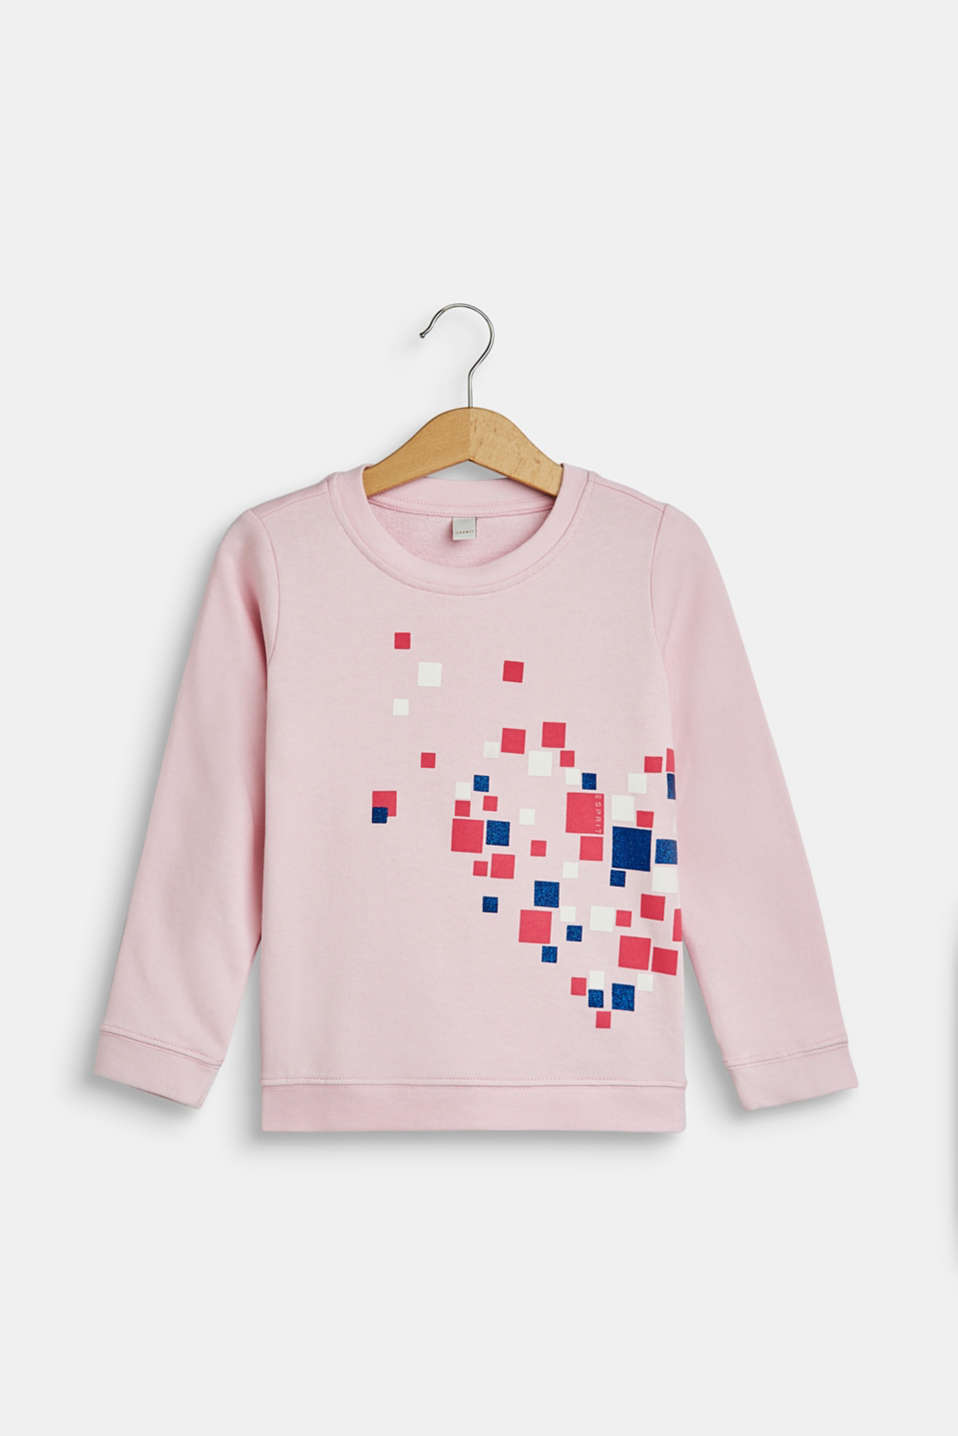 Esprit - Sweatshirt with glitter print, 100% cotton